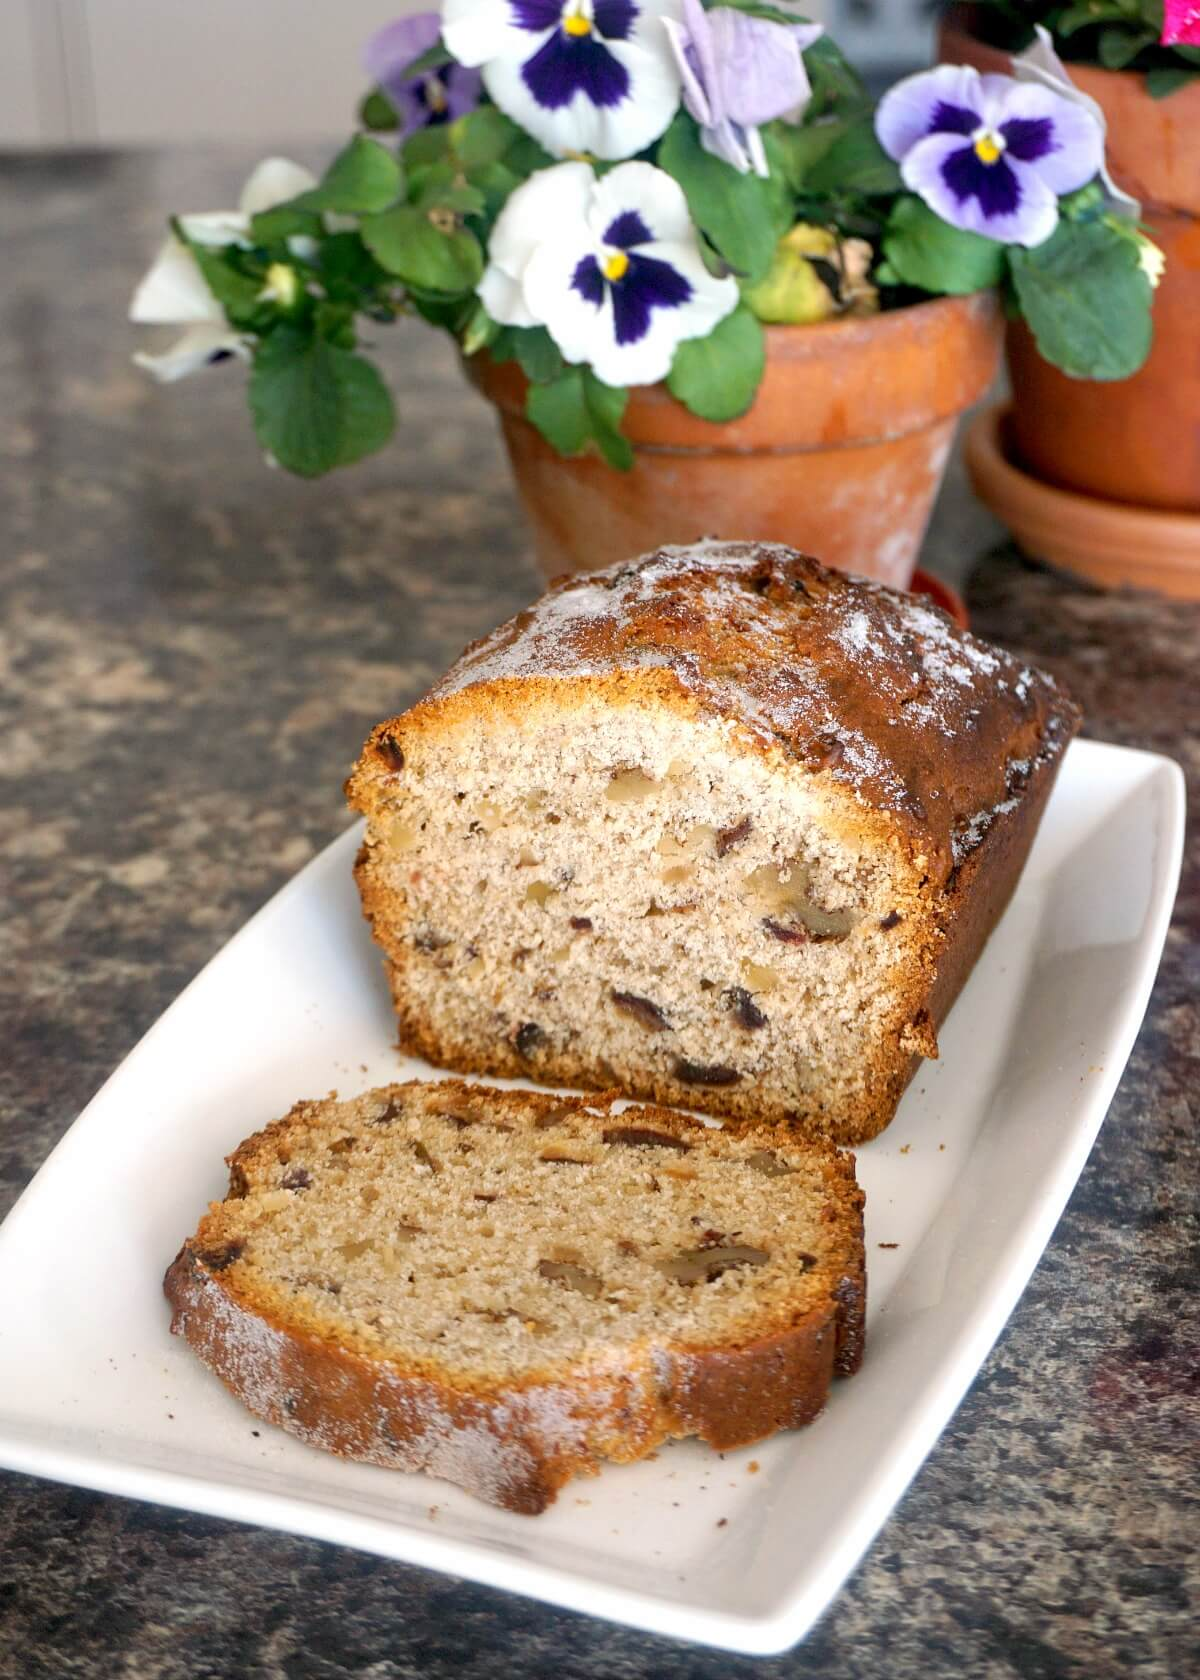 A sliced walnut and date cake on a rectangle white plate with a flower pot in the background